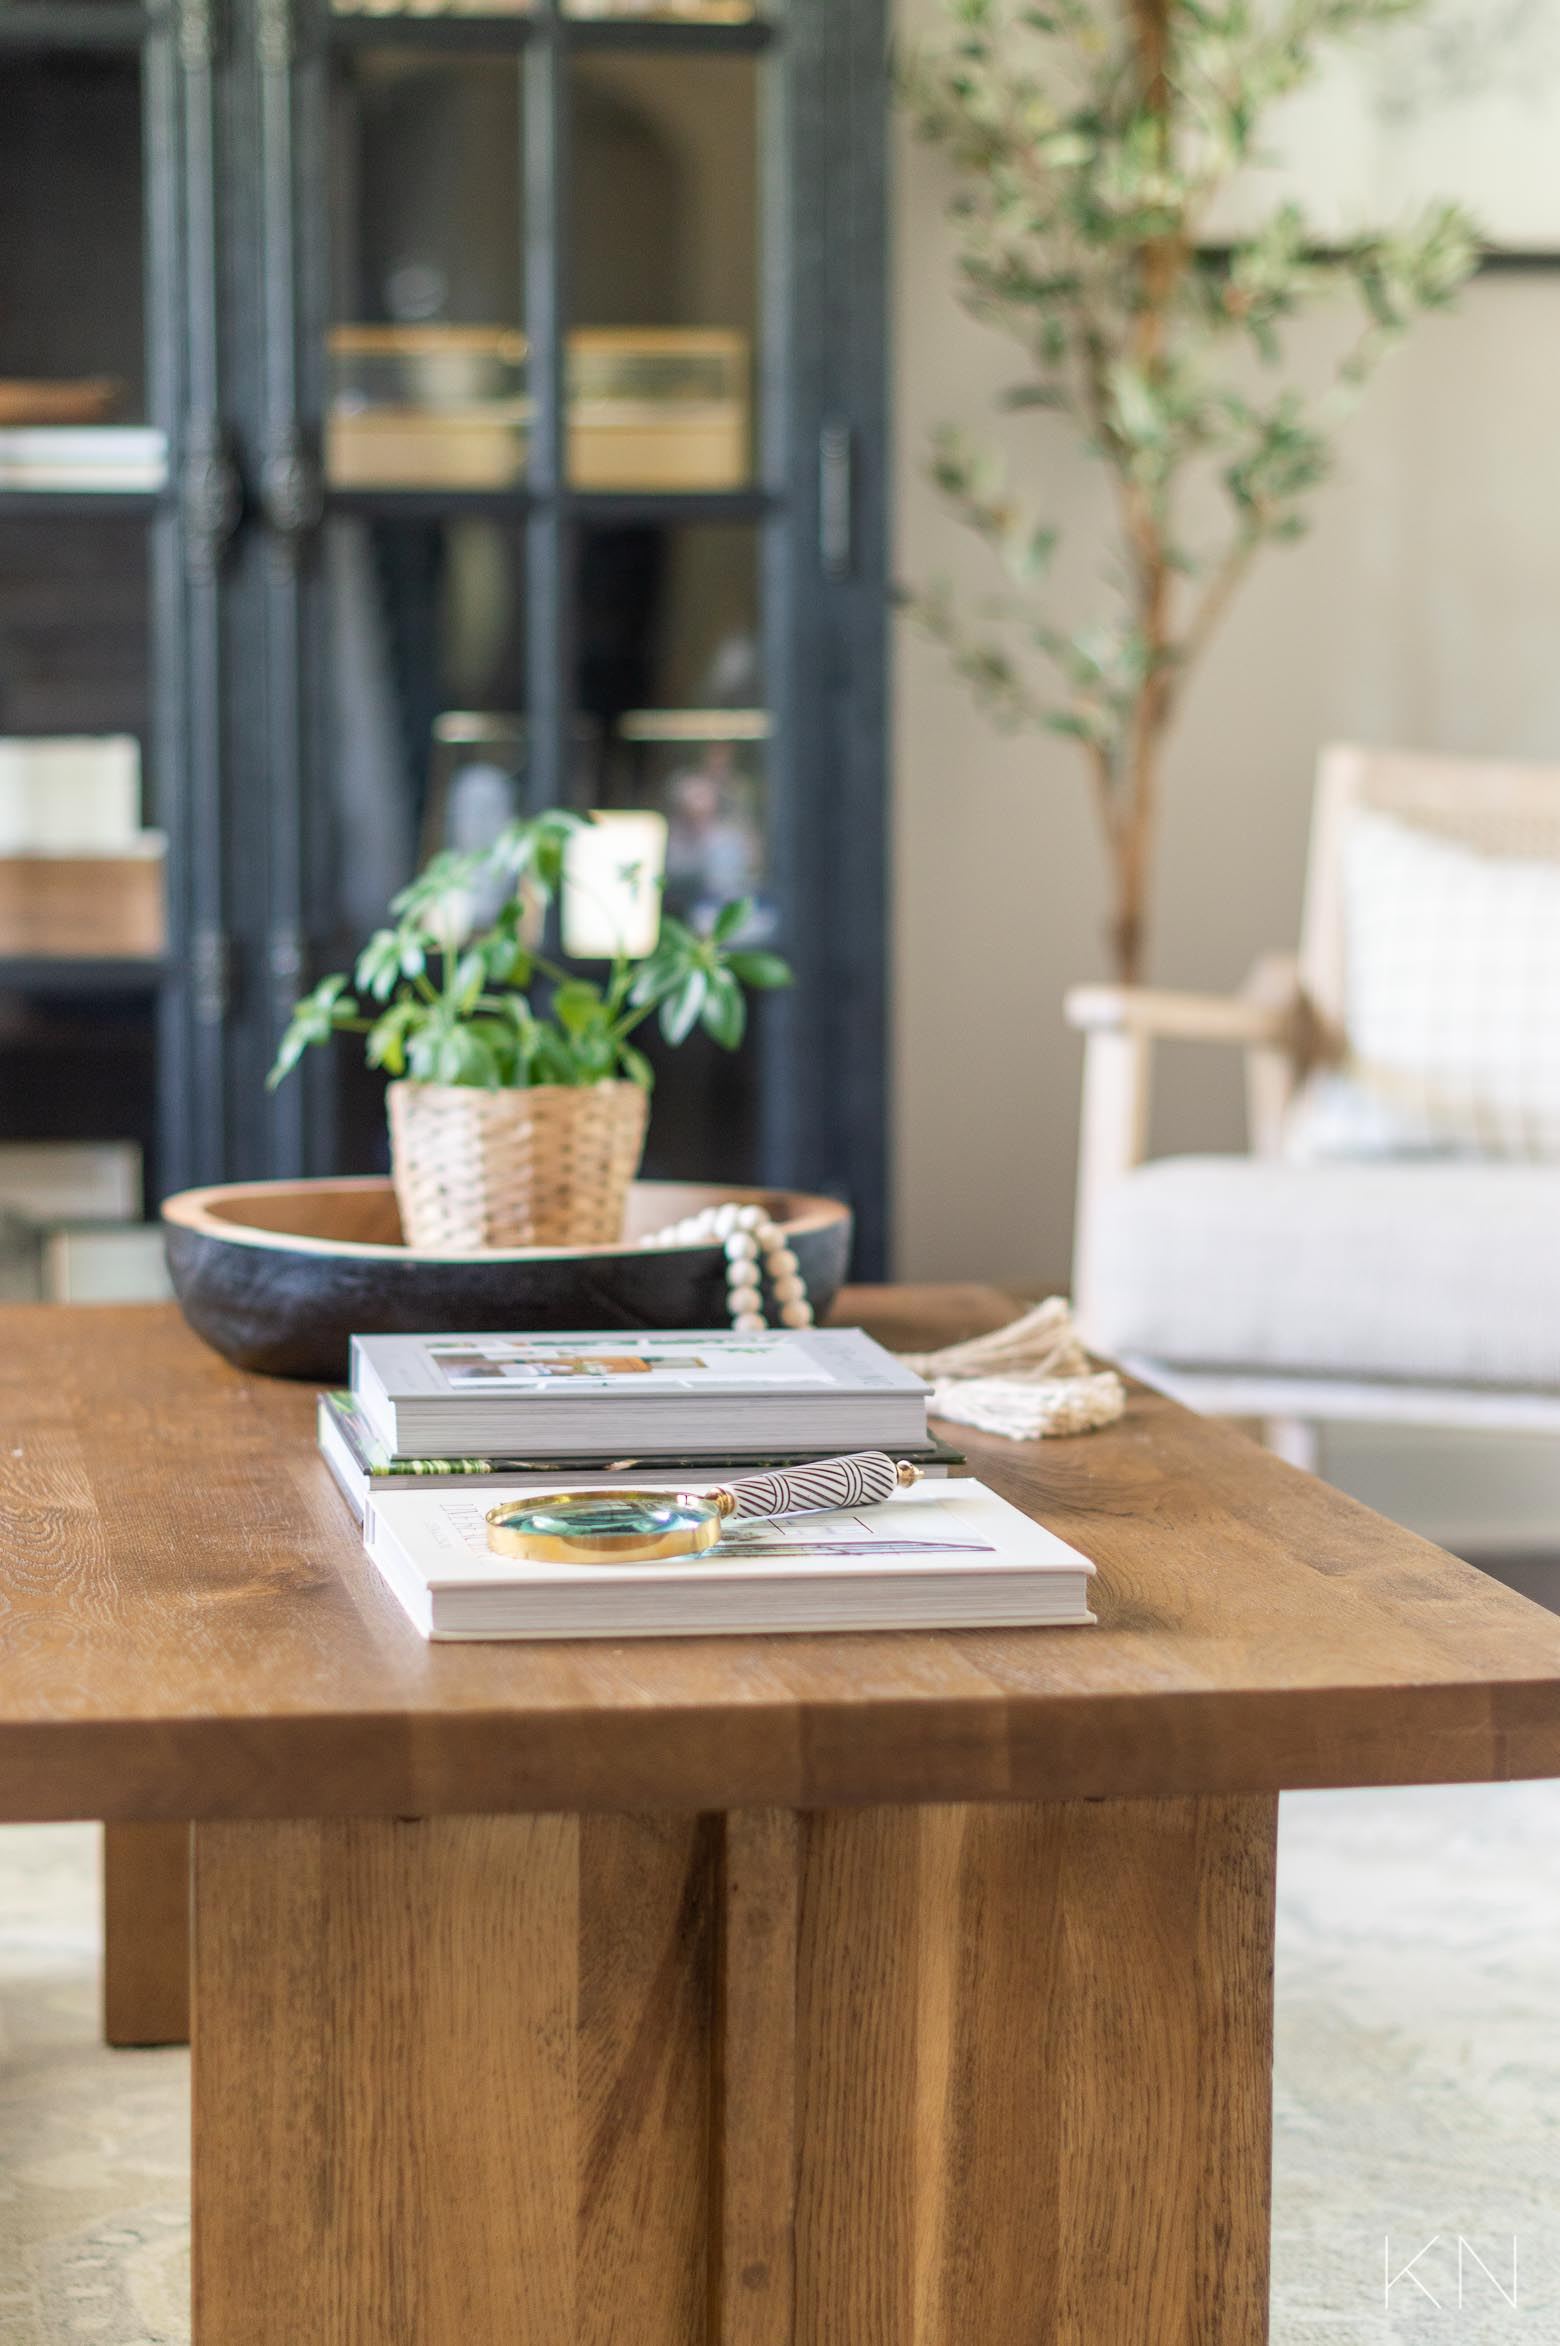 Styling a Small Coffee Table + Full Room Makeover Reveal